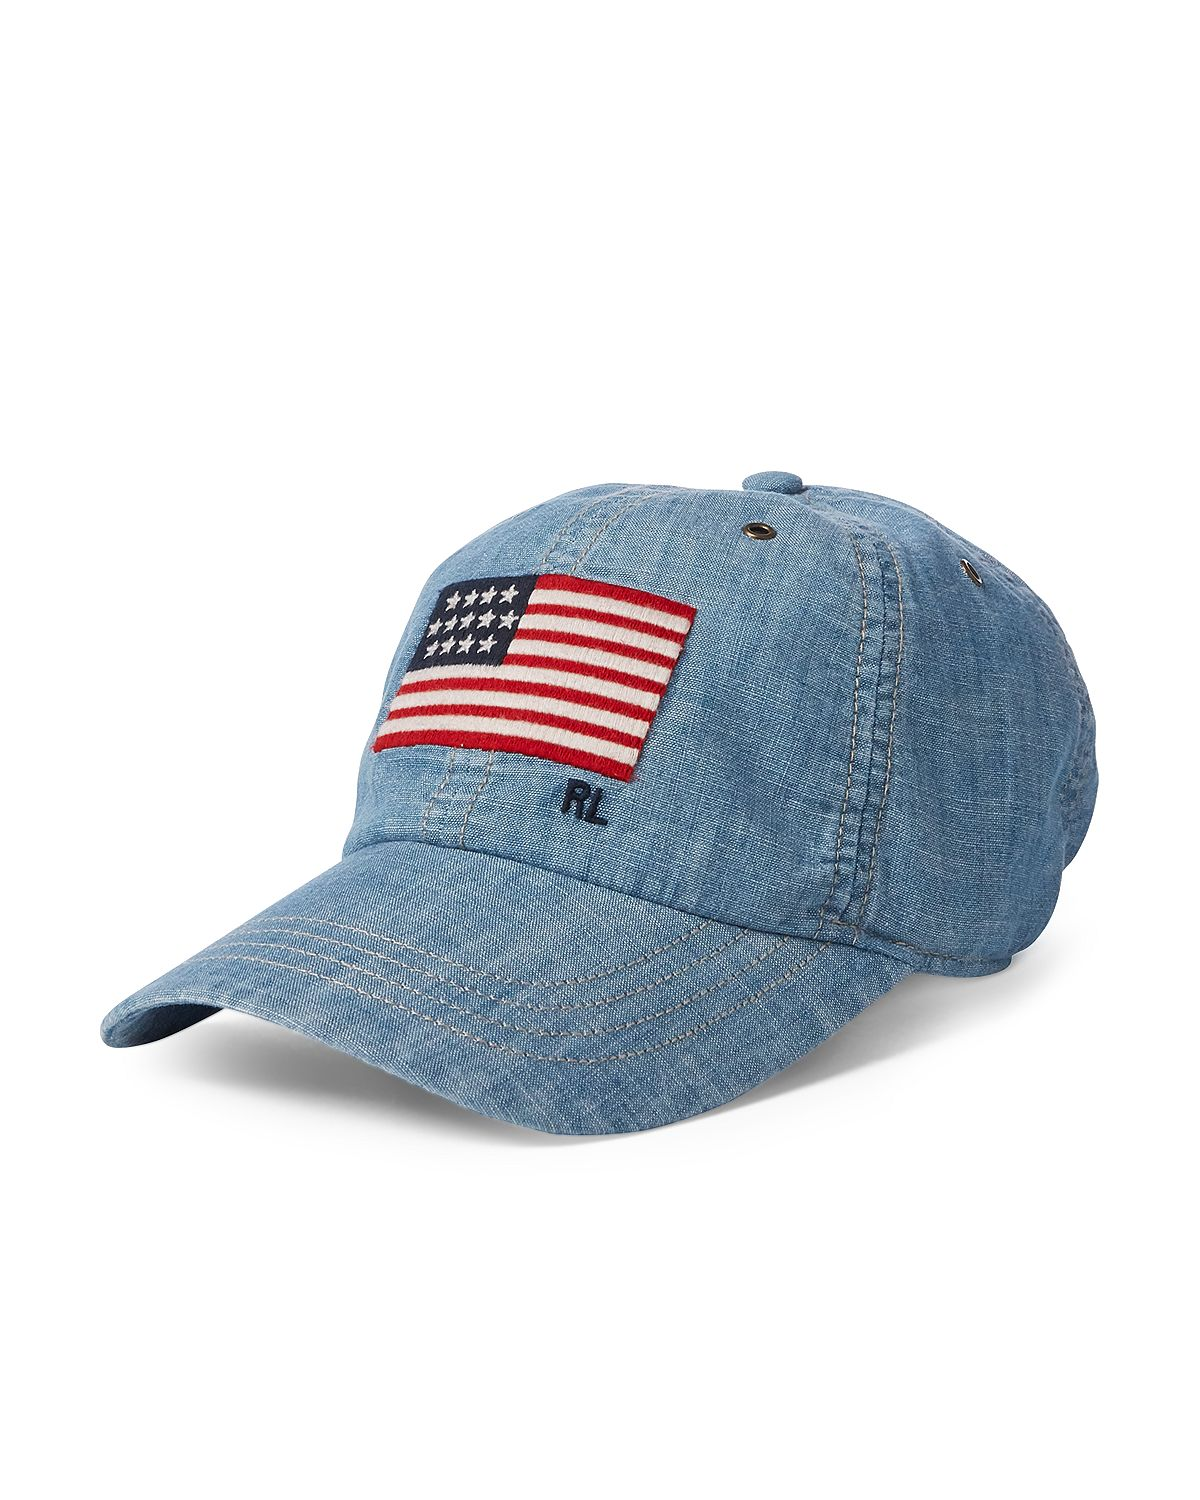 Polo Ralph Lauren Iconic Cap Chambray Blue